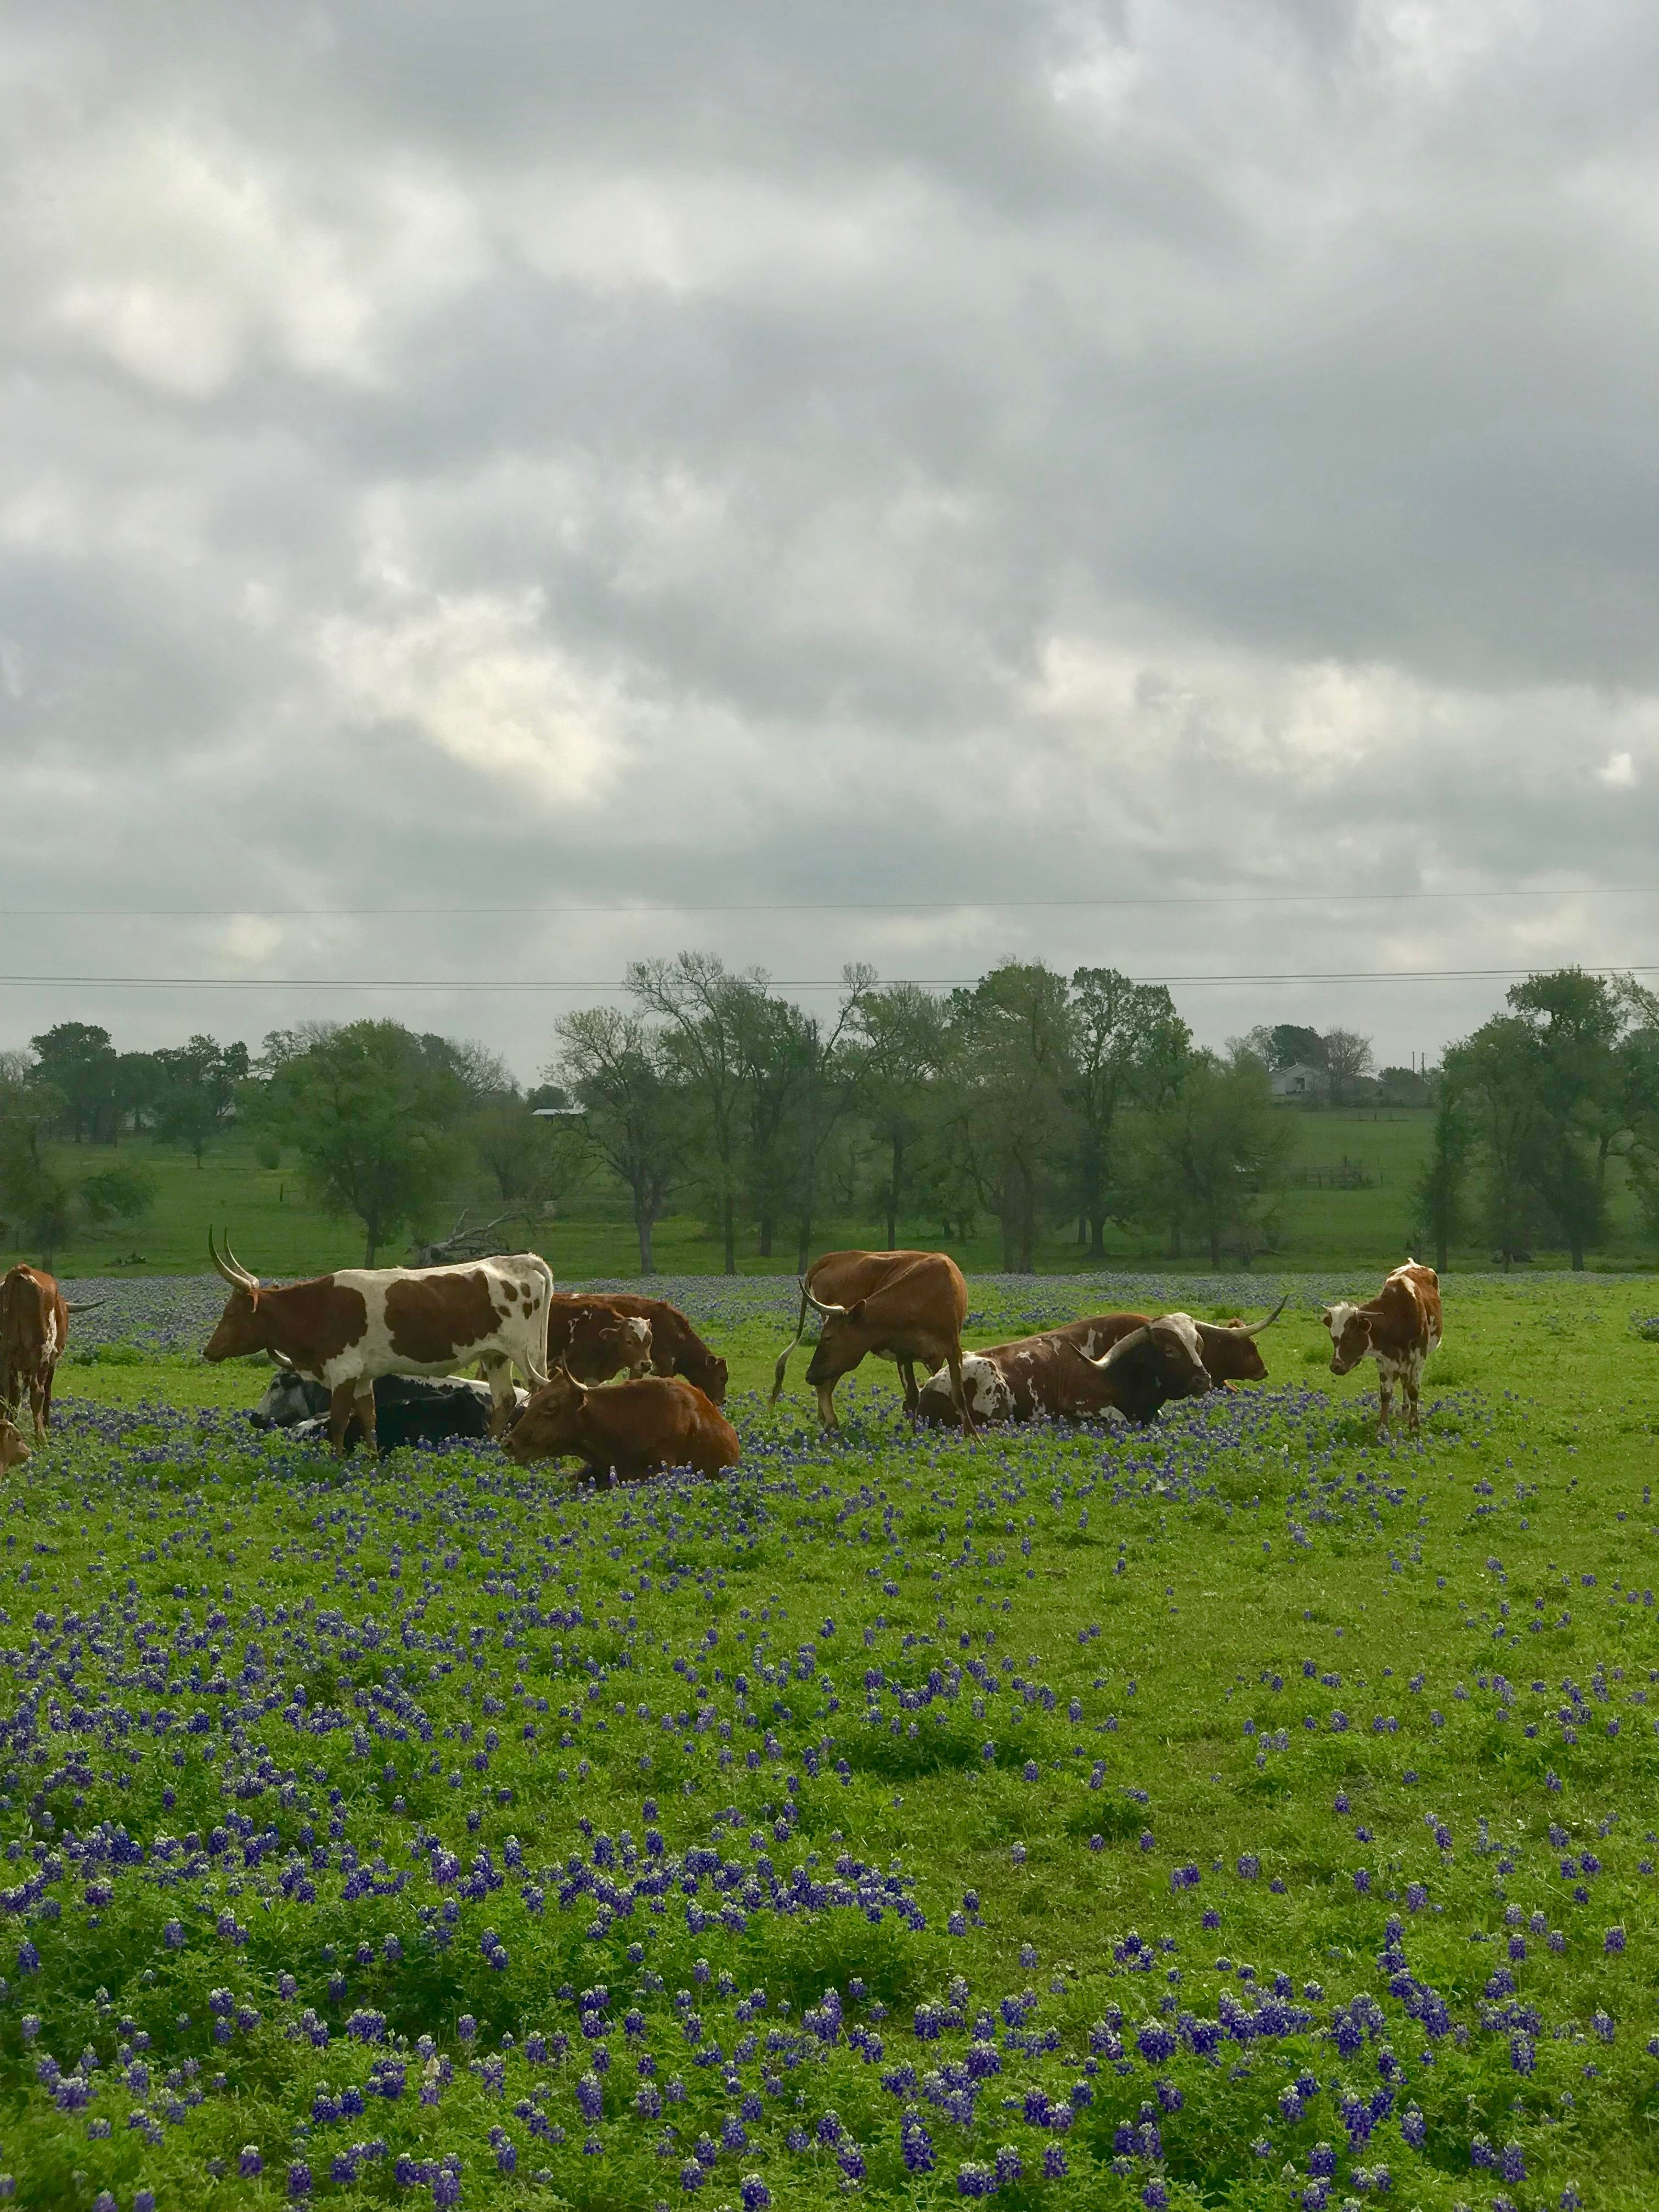 Pin by Angie Esquivel on Texas Animals, Cow, Texas